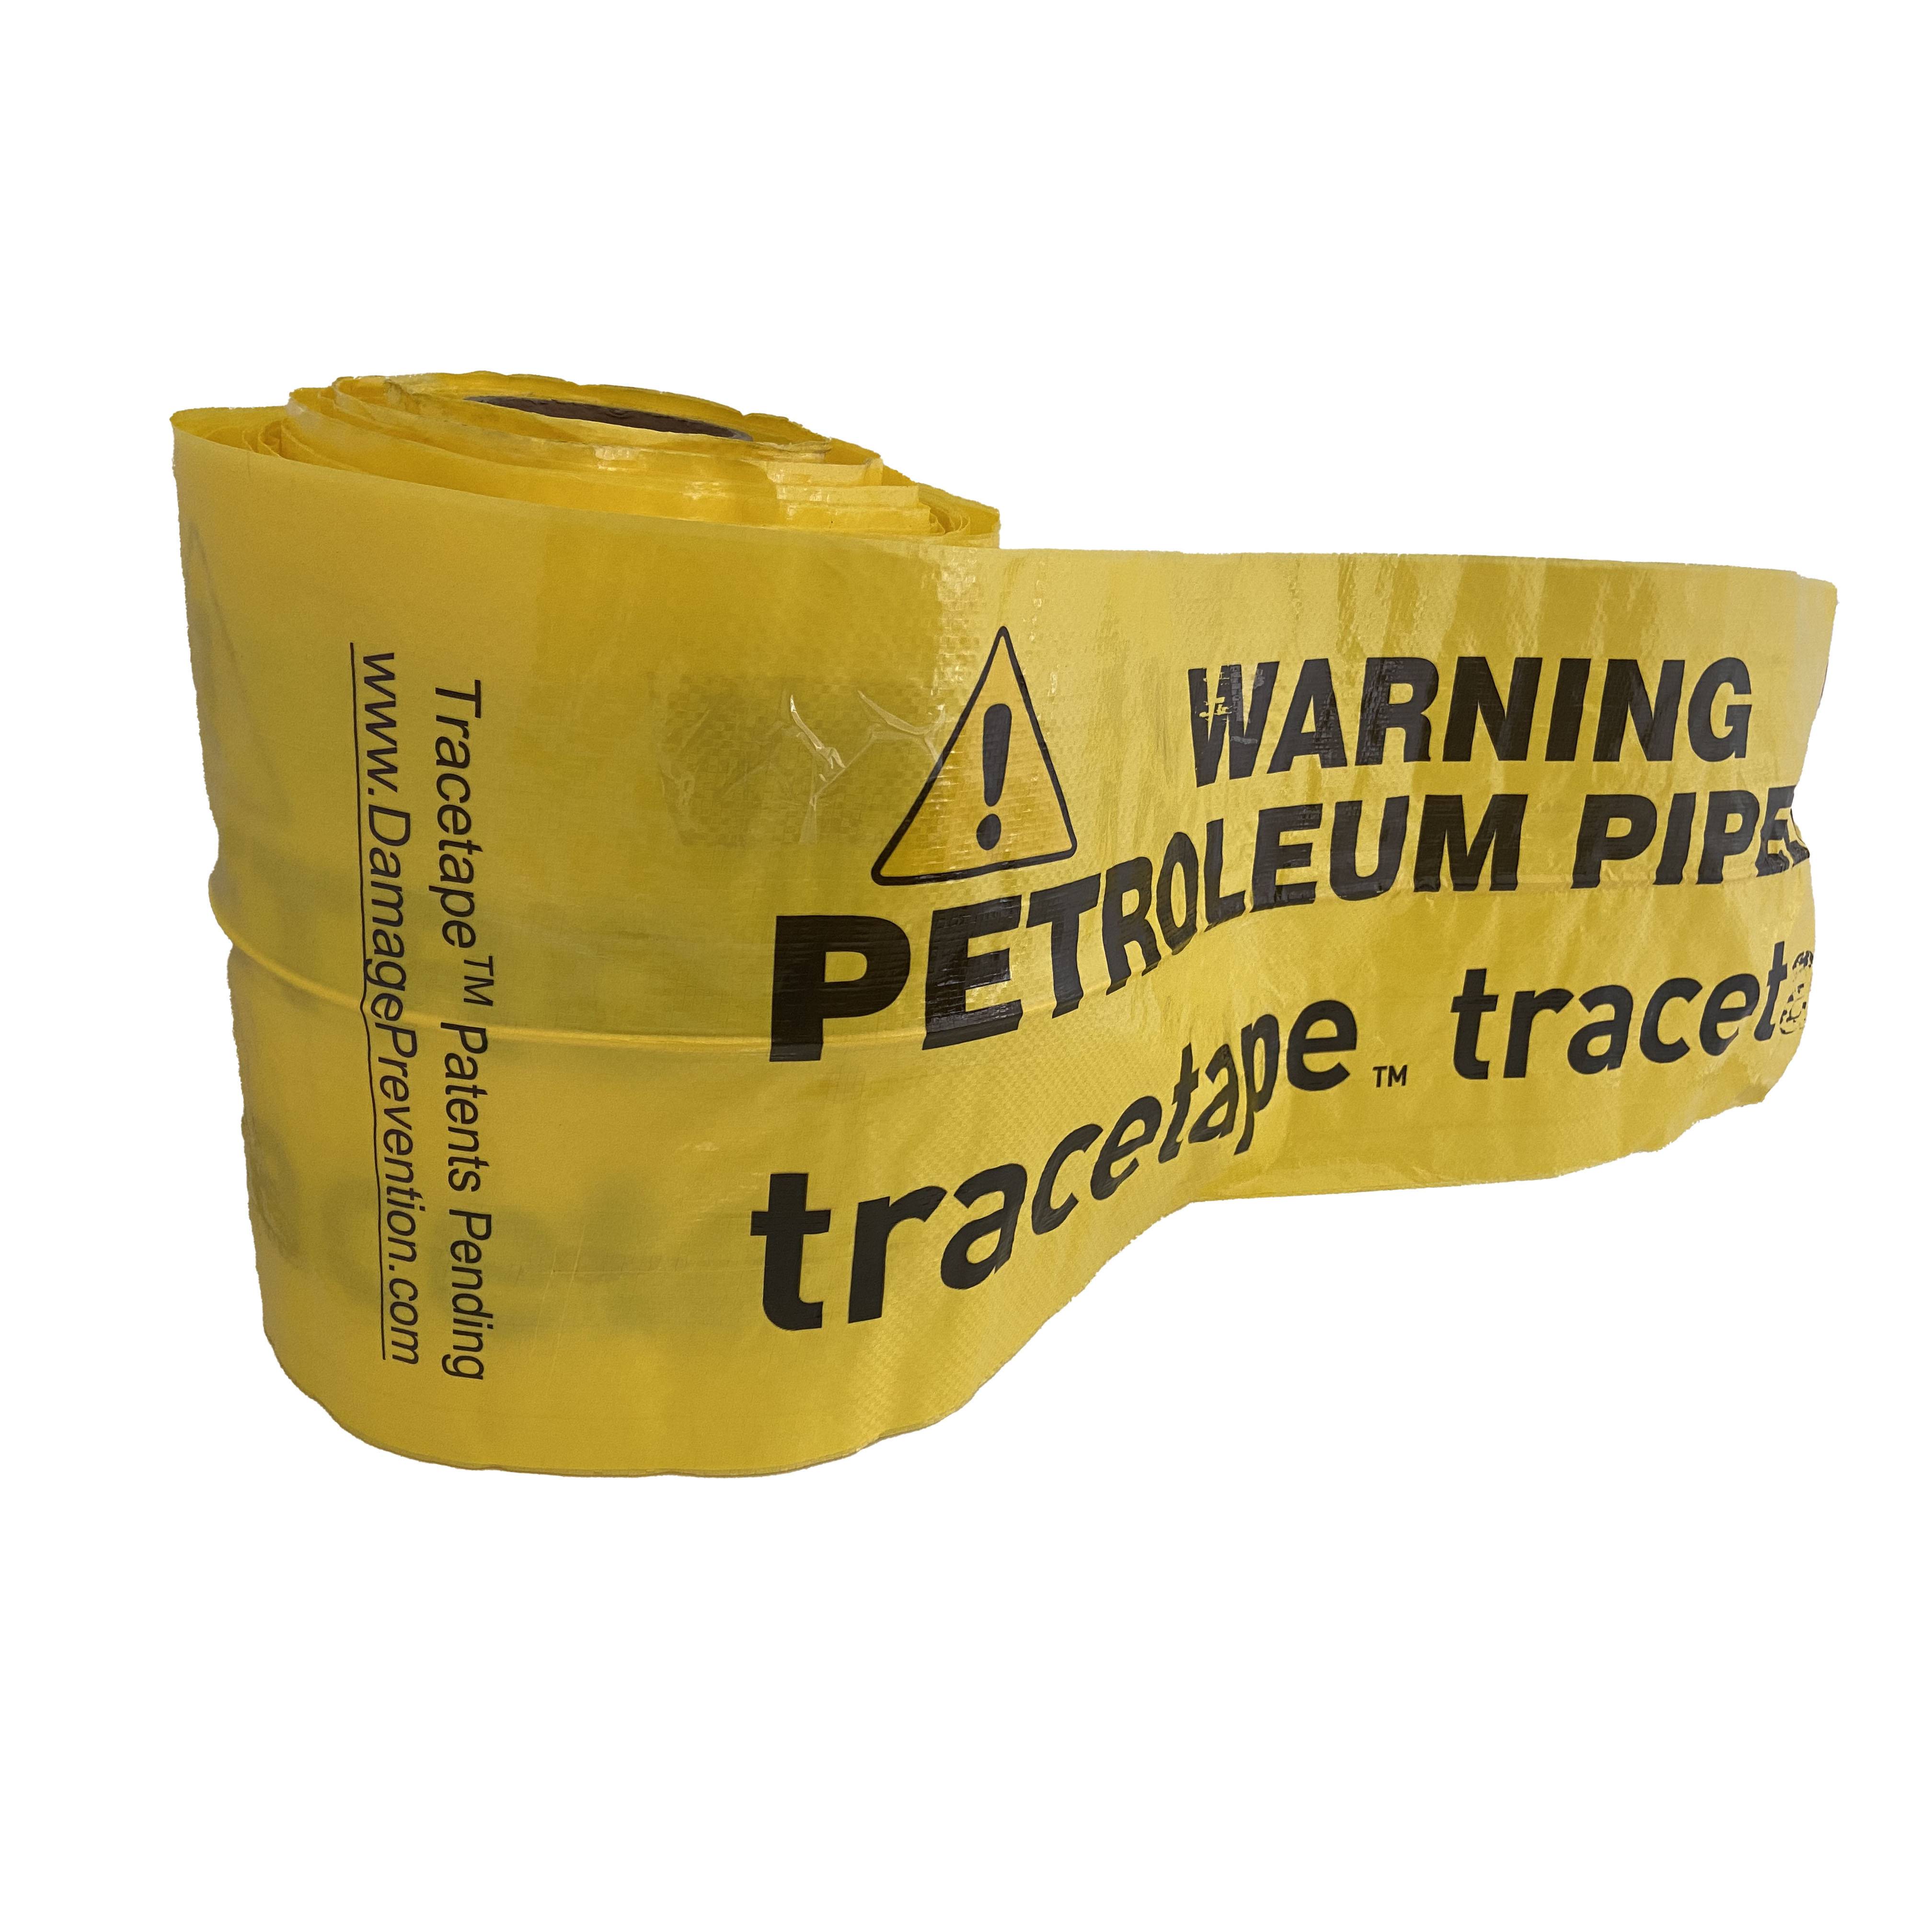 Pictures of products for protecting and marking buried utilities